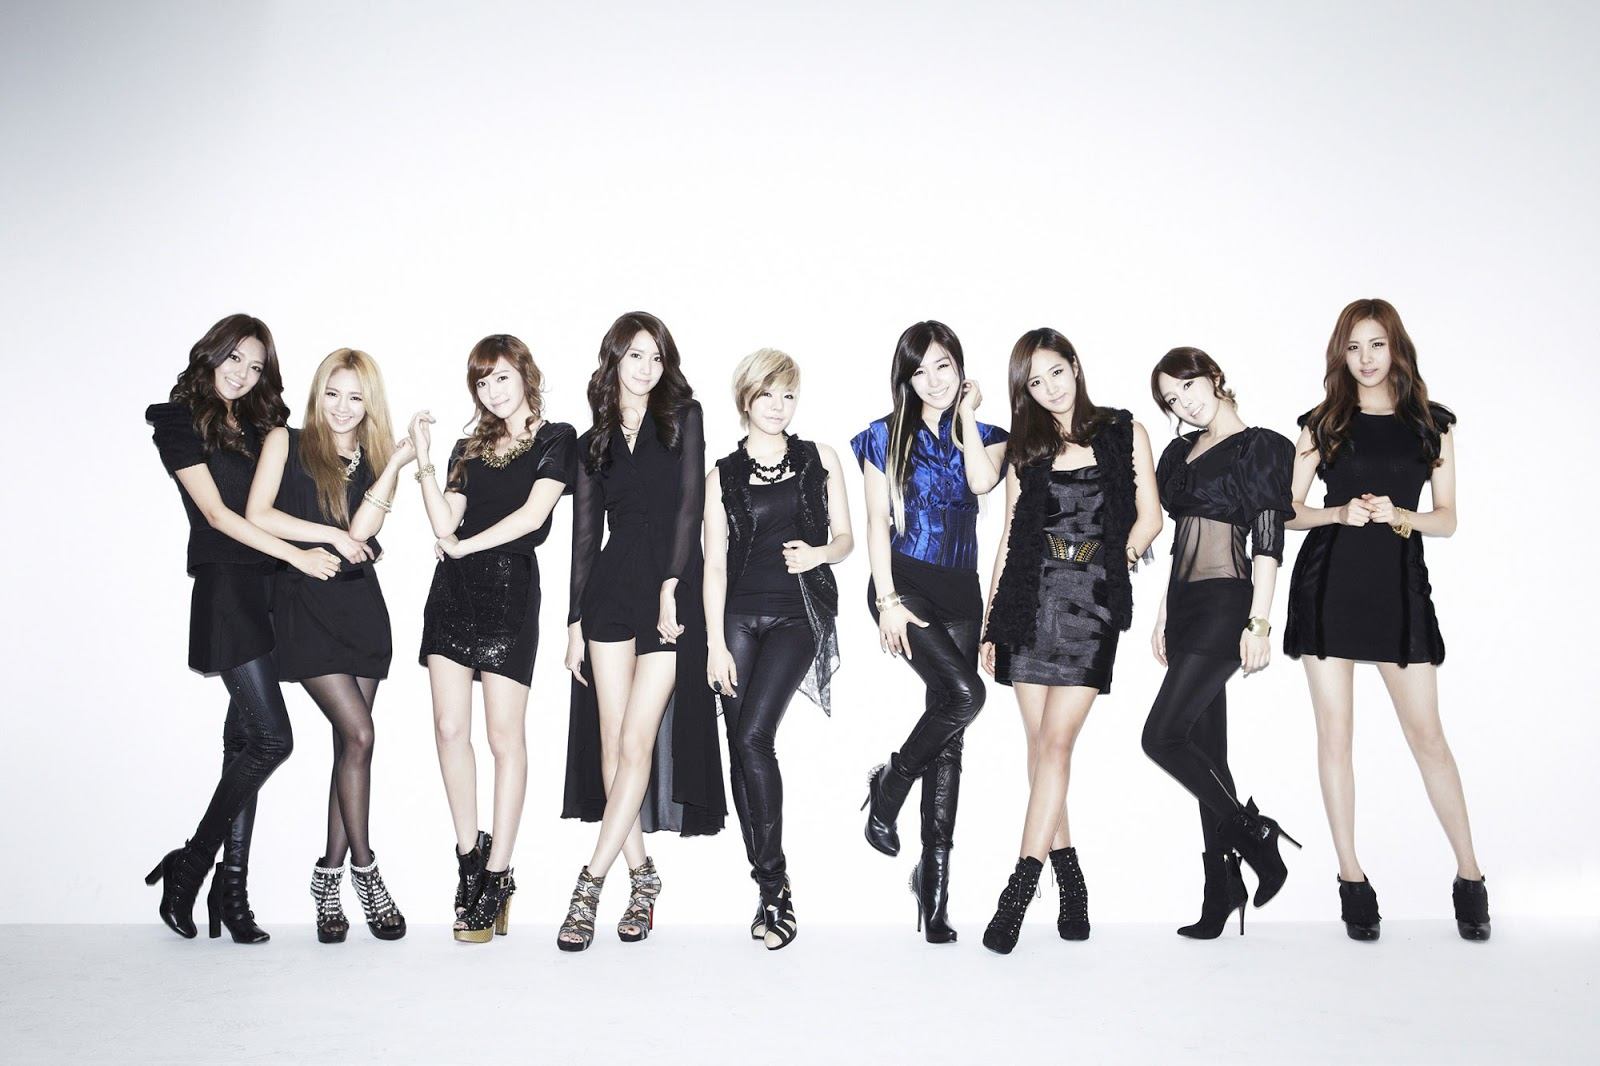 http://2.bp.blogspot.com/-PM21XSgzgz8/USGsoKB0w2I/AAAAAAAAdQk/xGWBEslNzdE/s1600/snsd-the-boys-wallpaper-hd.jpg